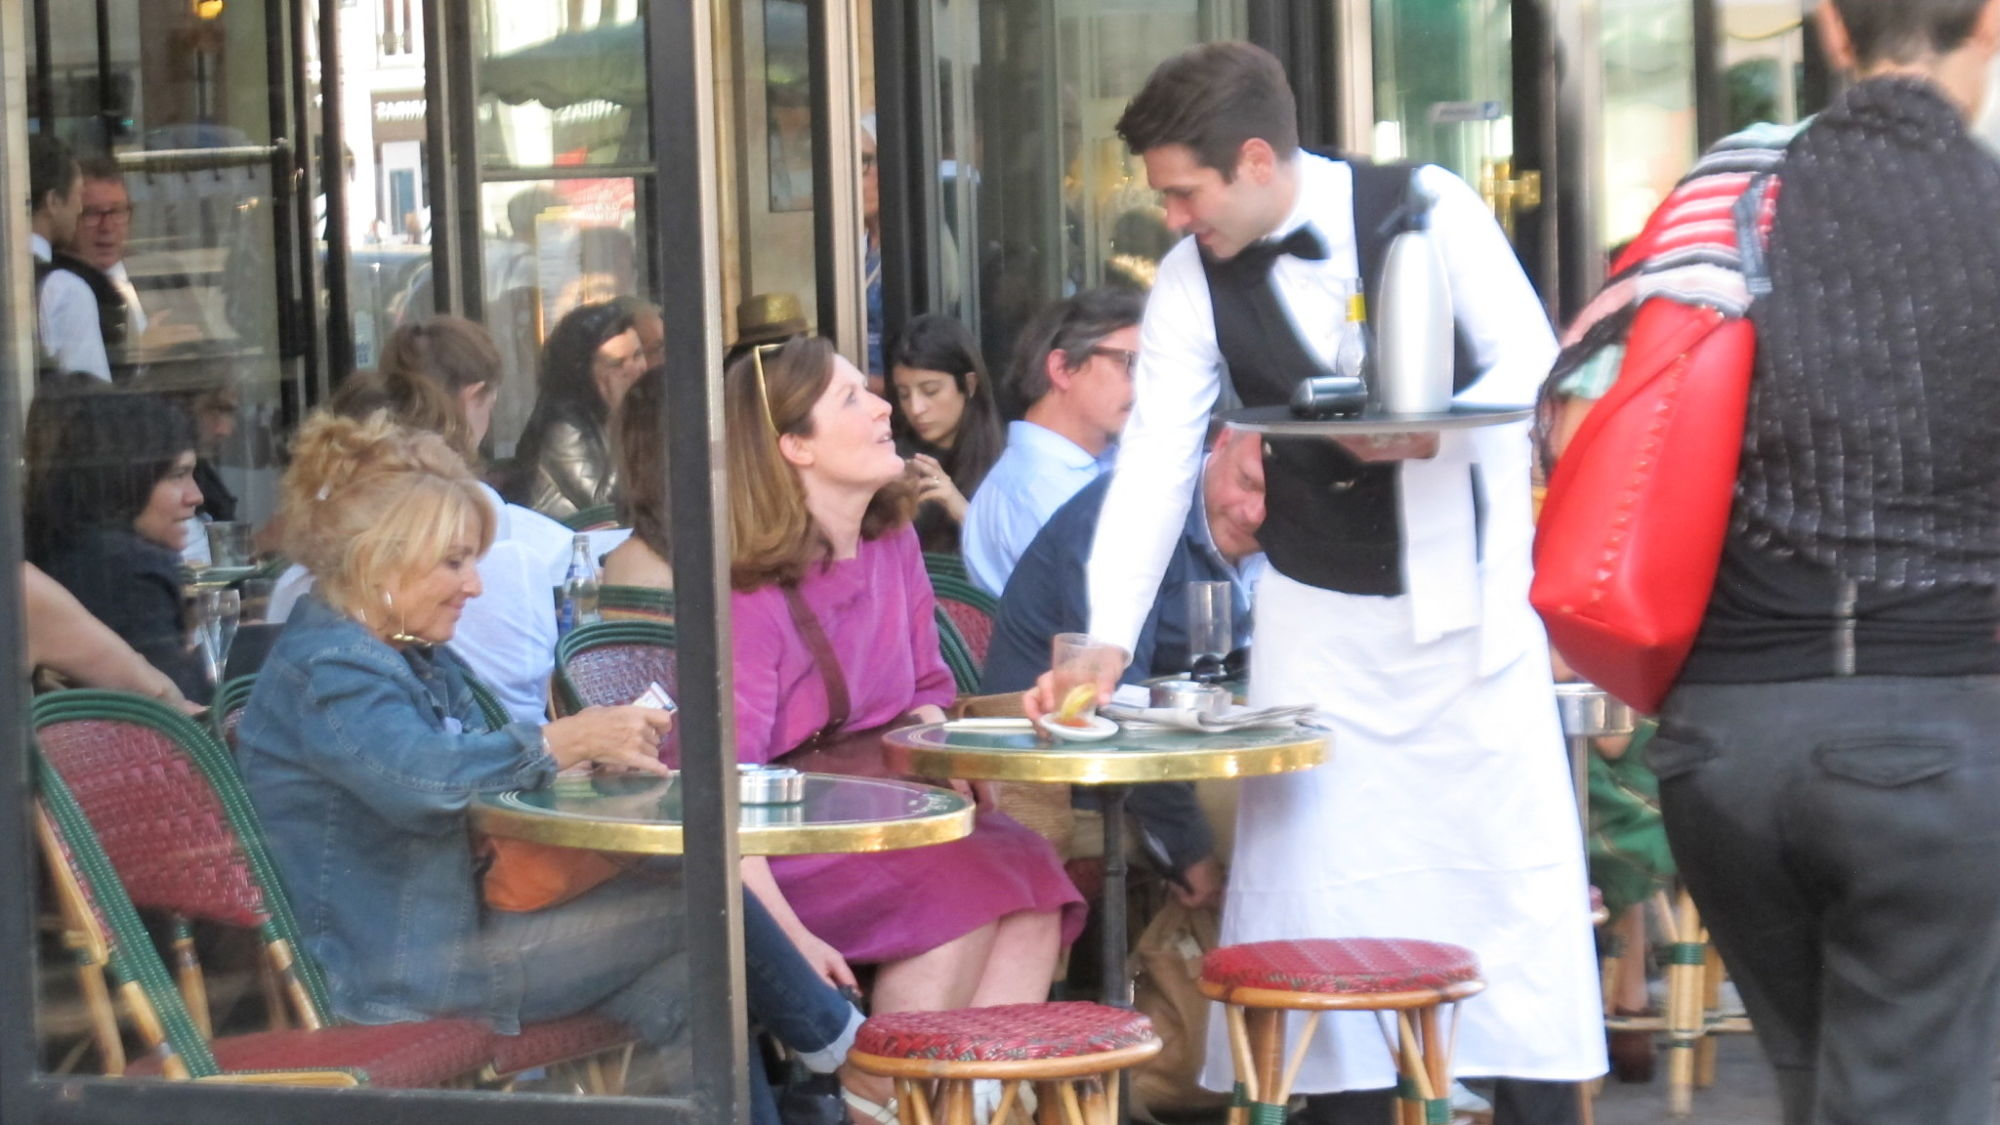 Guests at a café in the Saint Germain des Prés area of Paris.